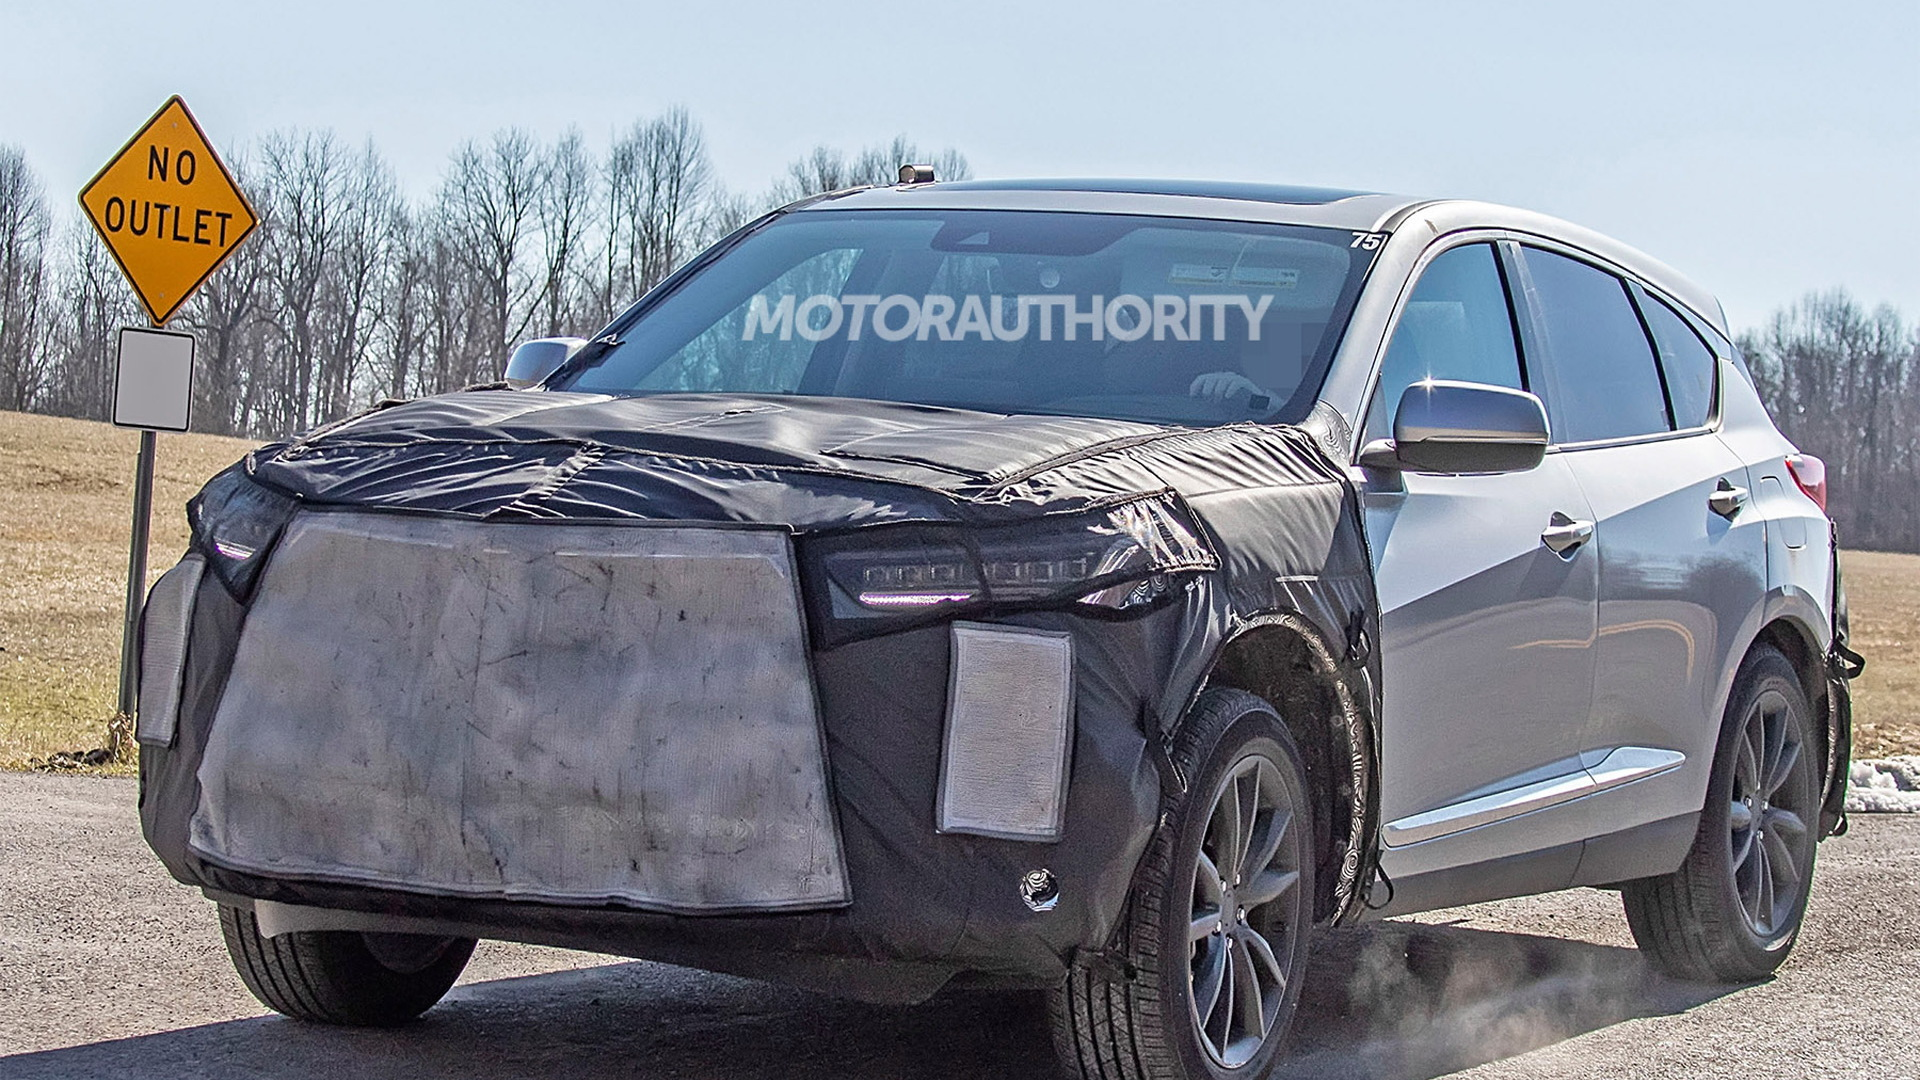 2022 Acura RDX facelift spy shots - Photo credit: S. Baldauf/SB-Medien